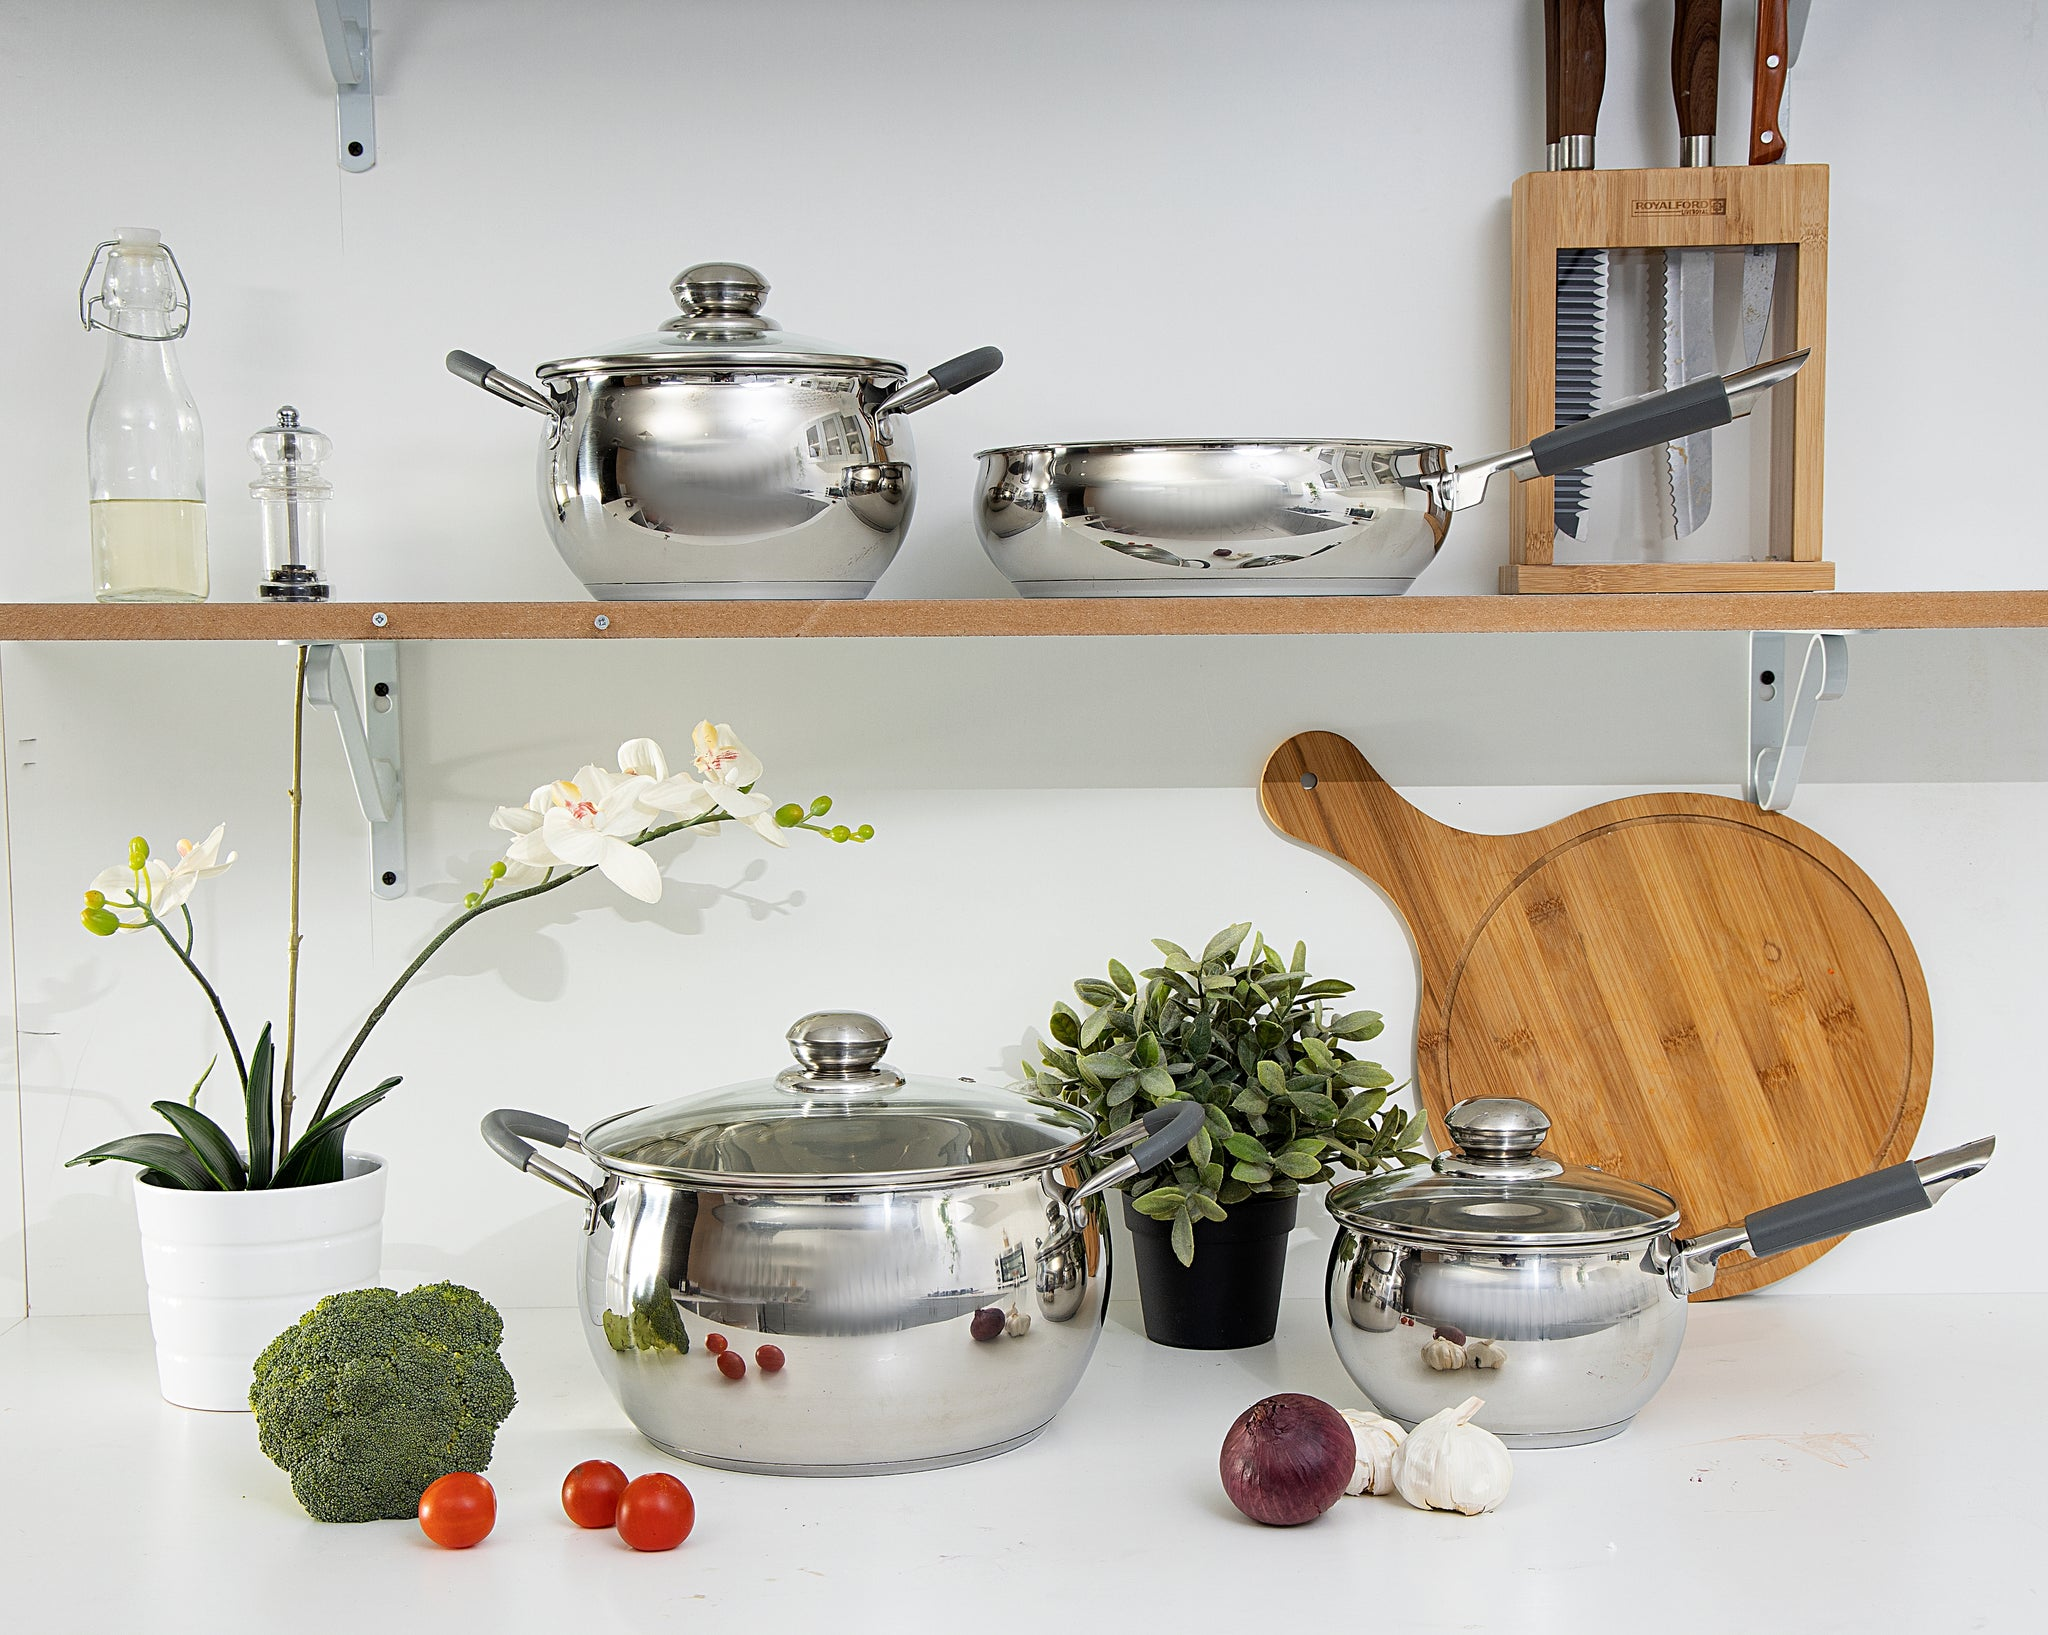 Royalford RF5123 Stainless Steel Cookware Set, 7 Pcs